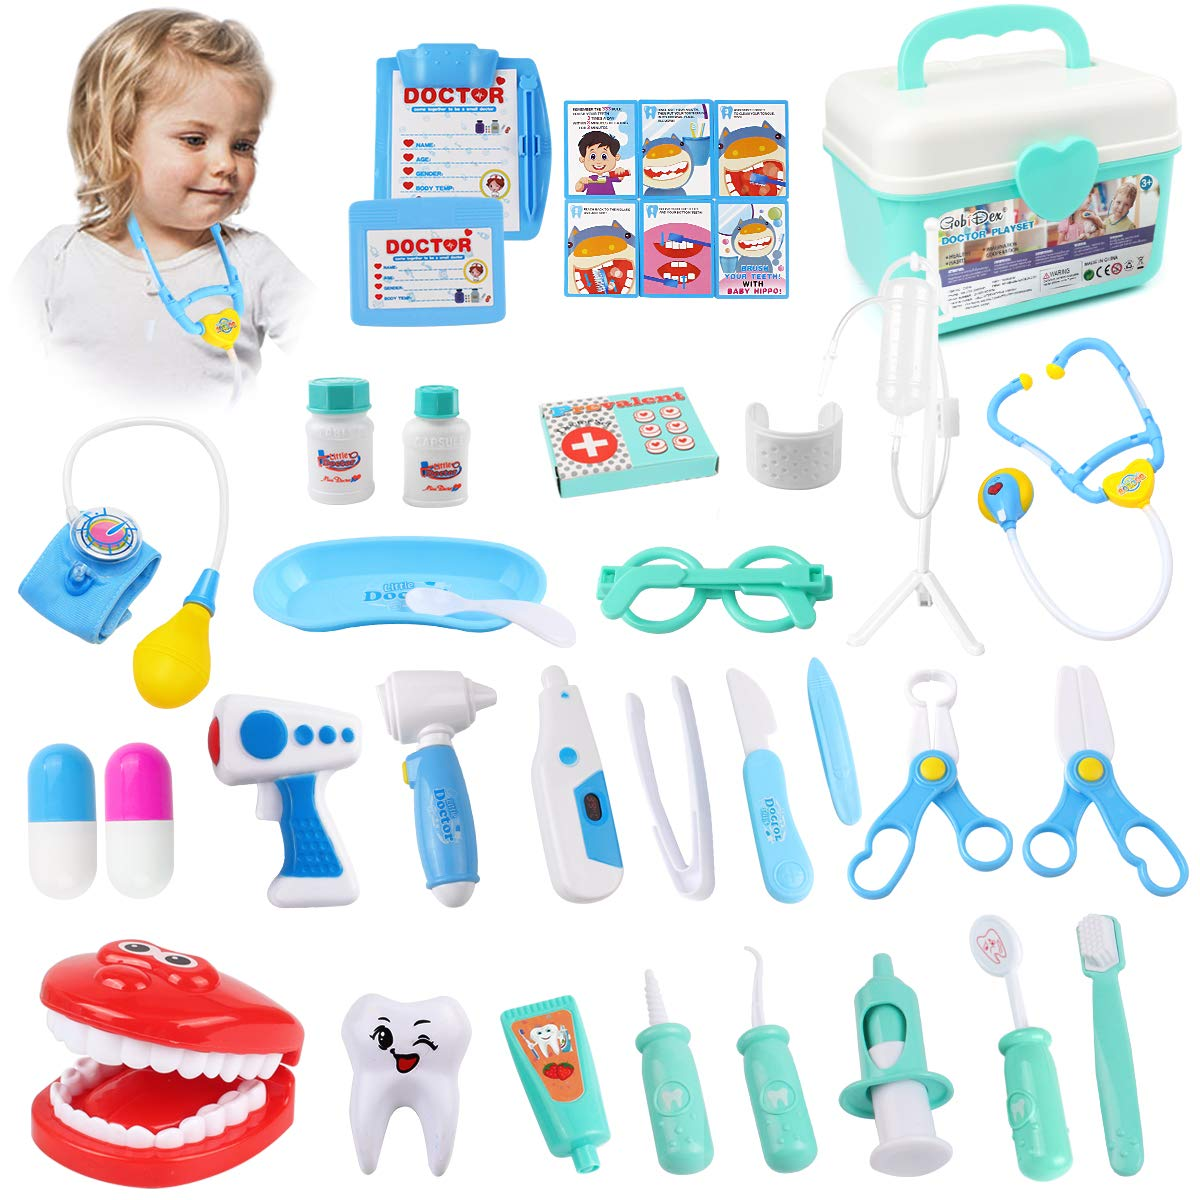 KIDCHEER Pretend Play Doctor Kit for Kids, Dentist Role Play Educational Toy with Storage Box - 36PCS